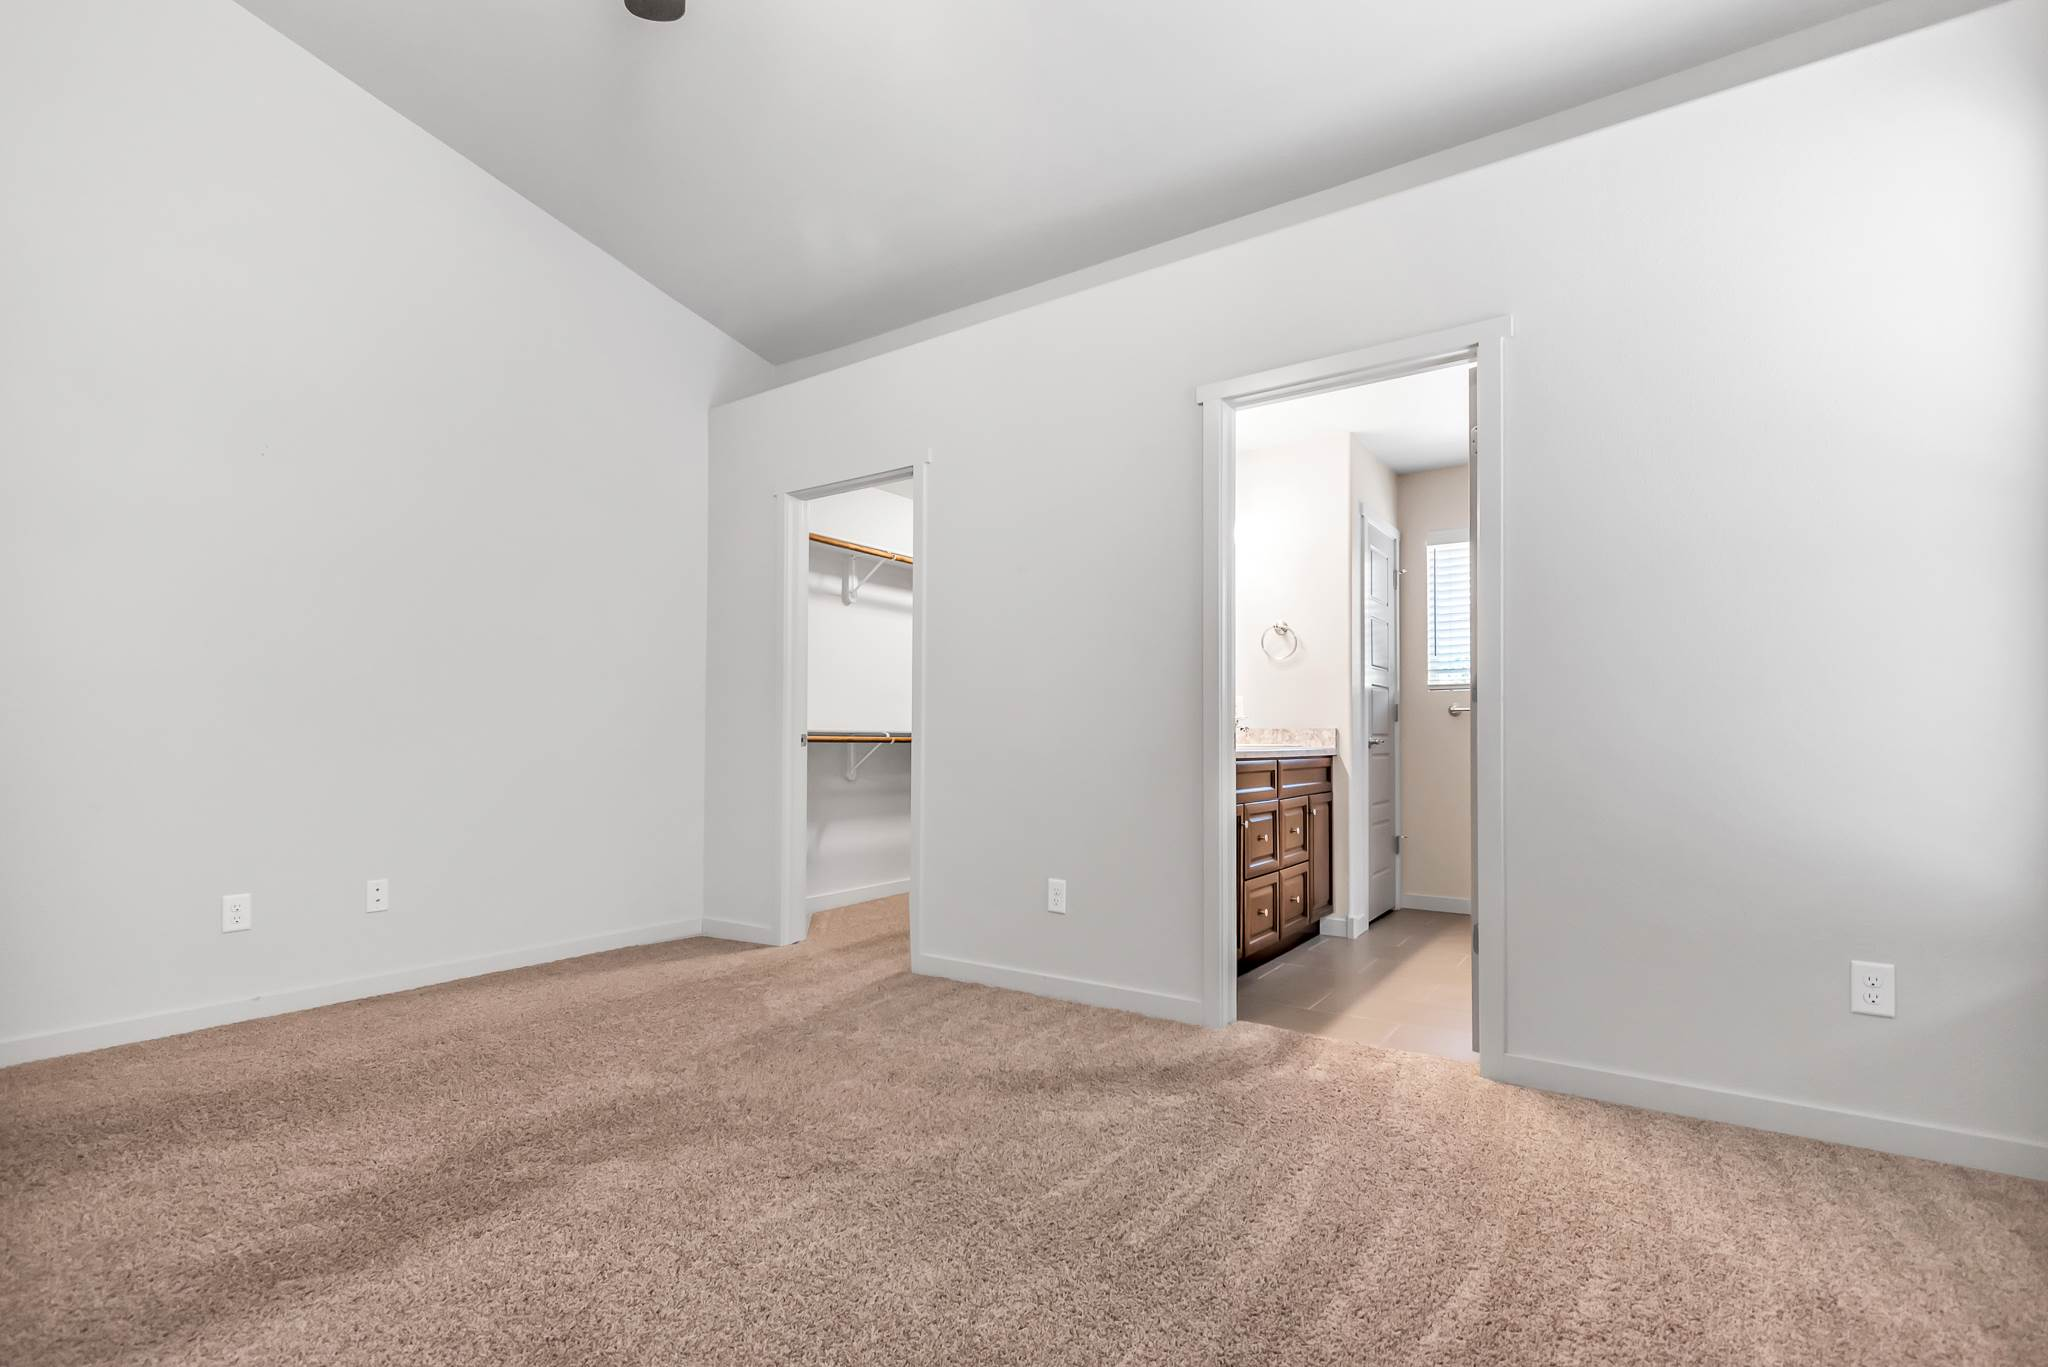 443 Donogal Drive, #B, Grand Junction, CO 81504